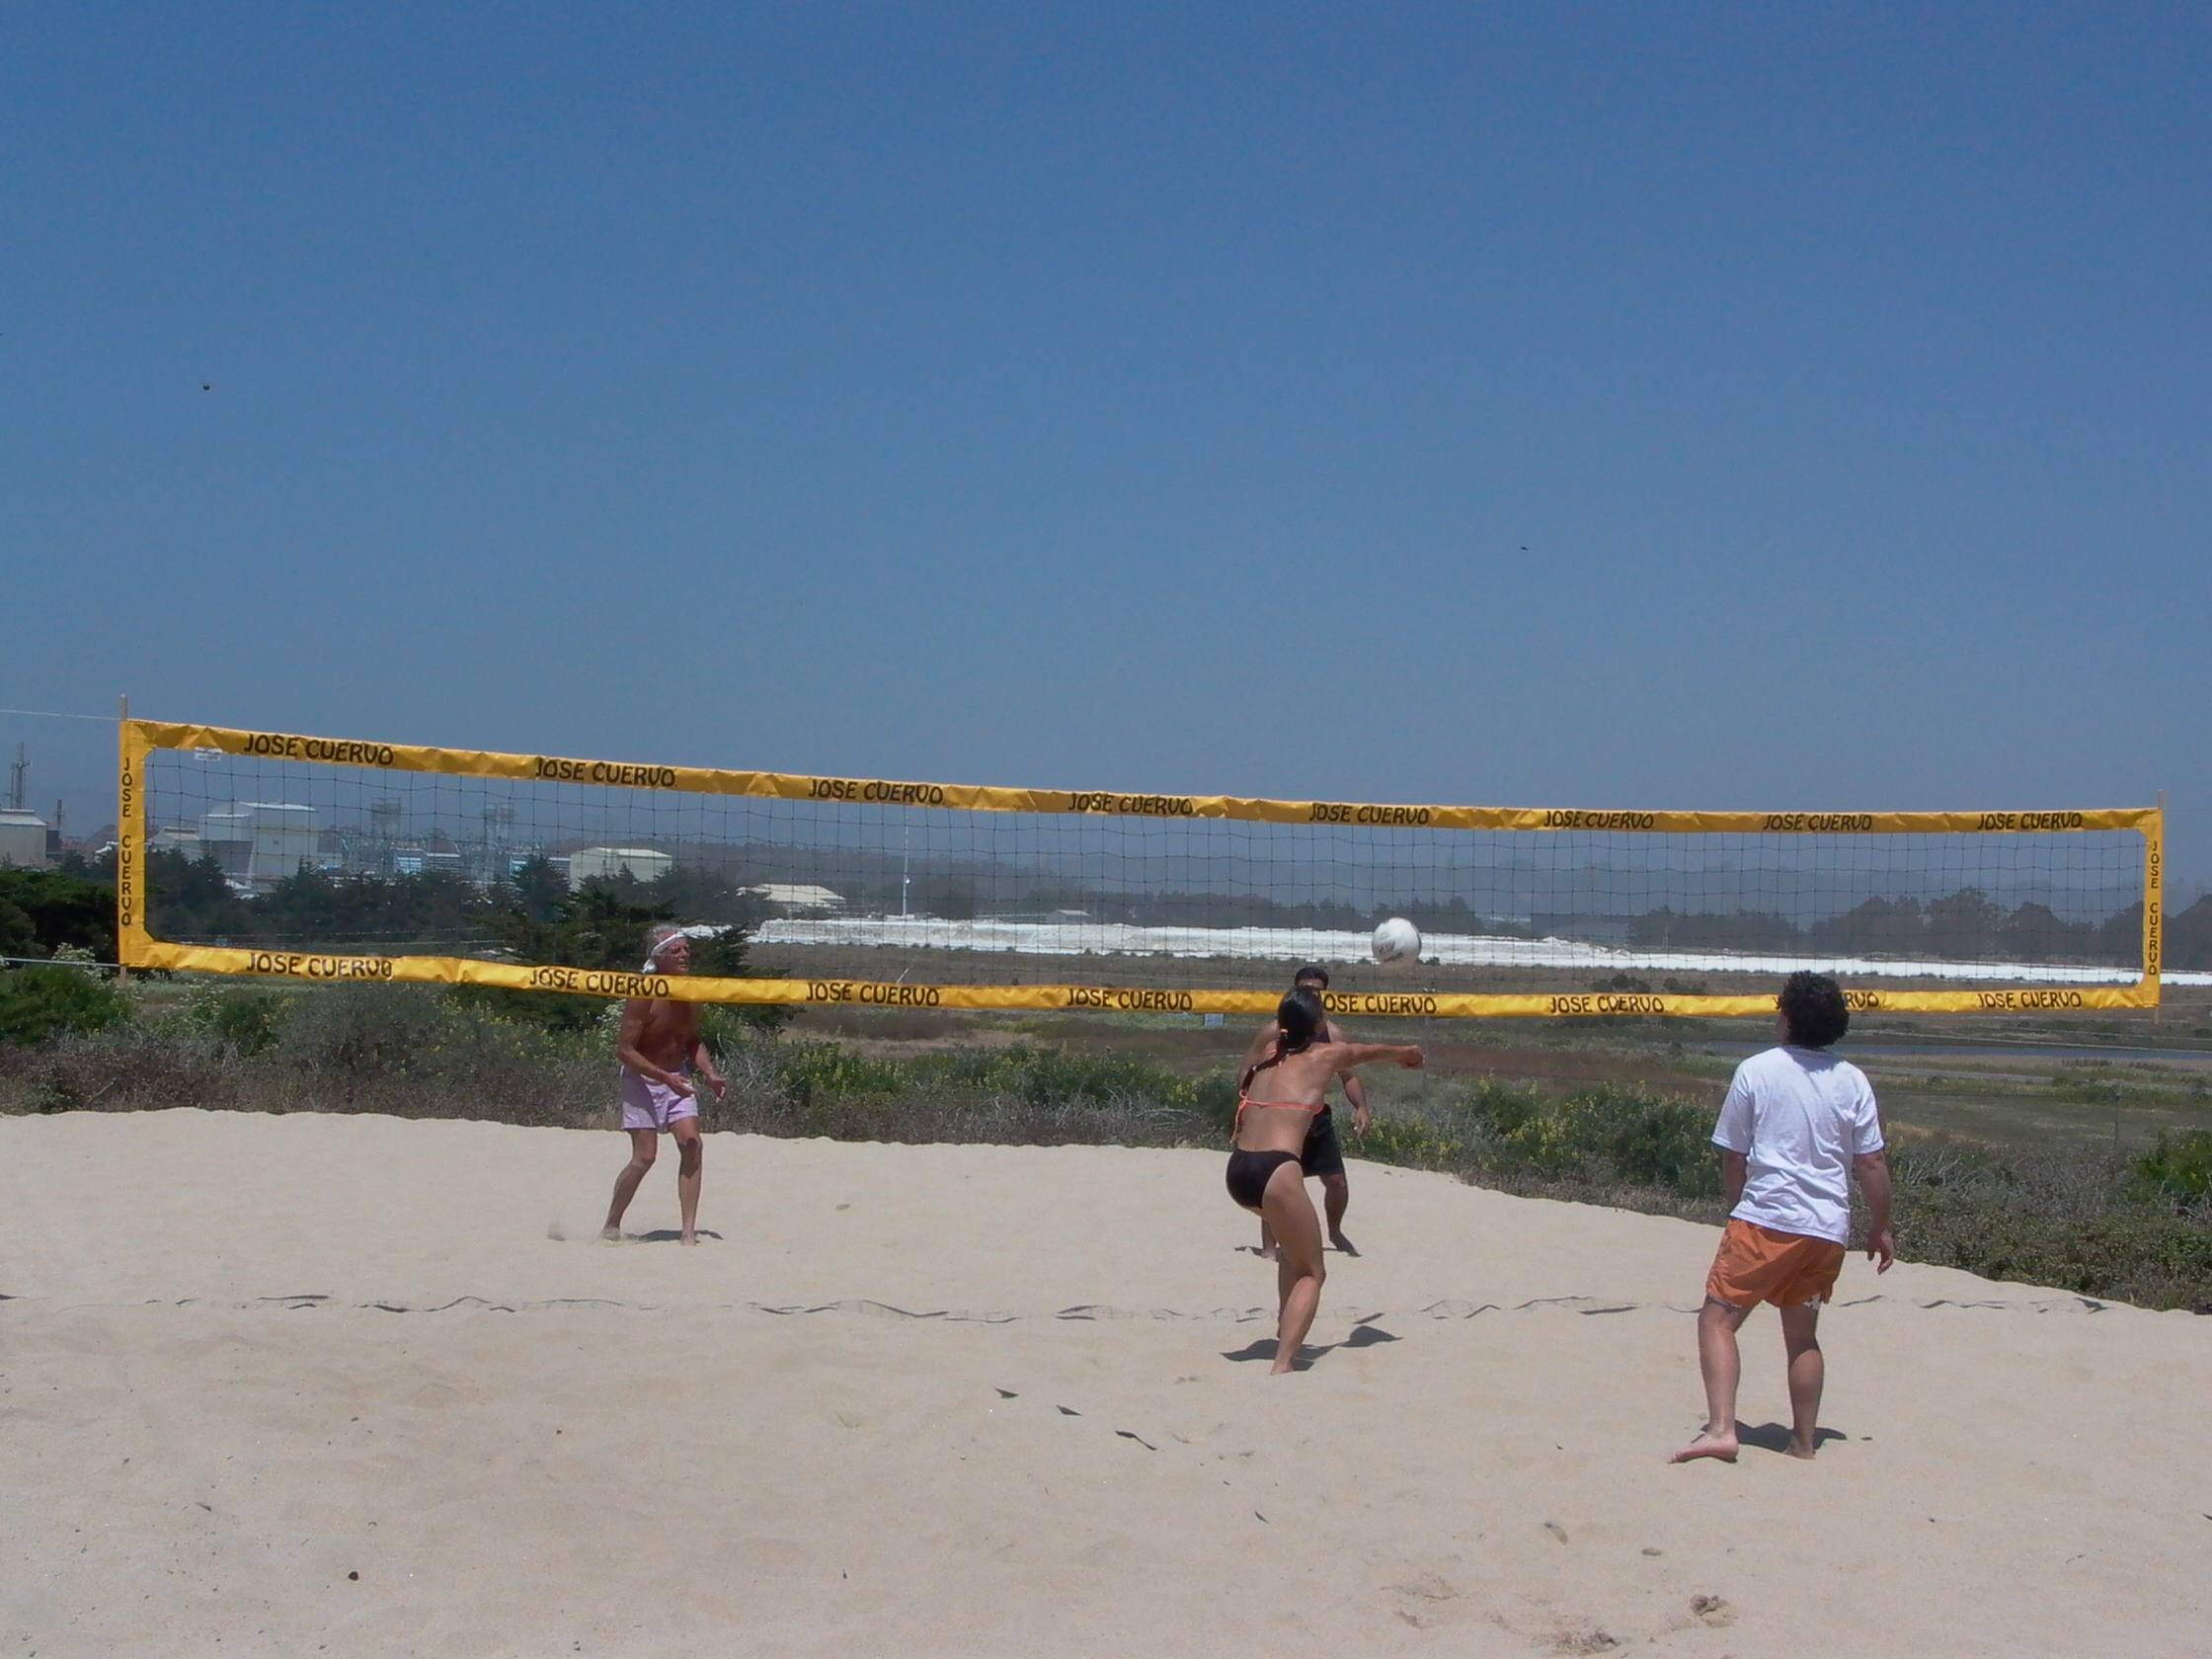 beach volleyball at mlml mlml 50th anniversary